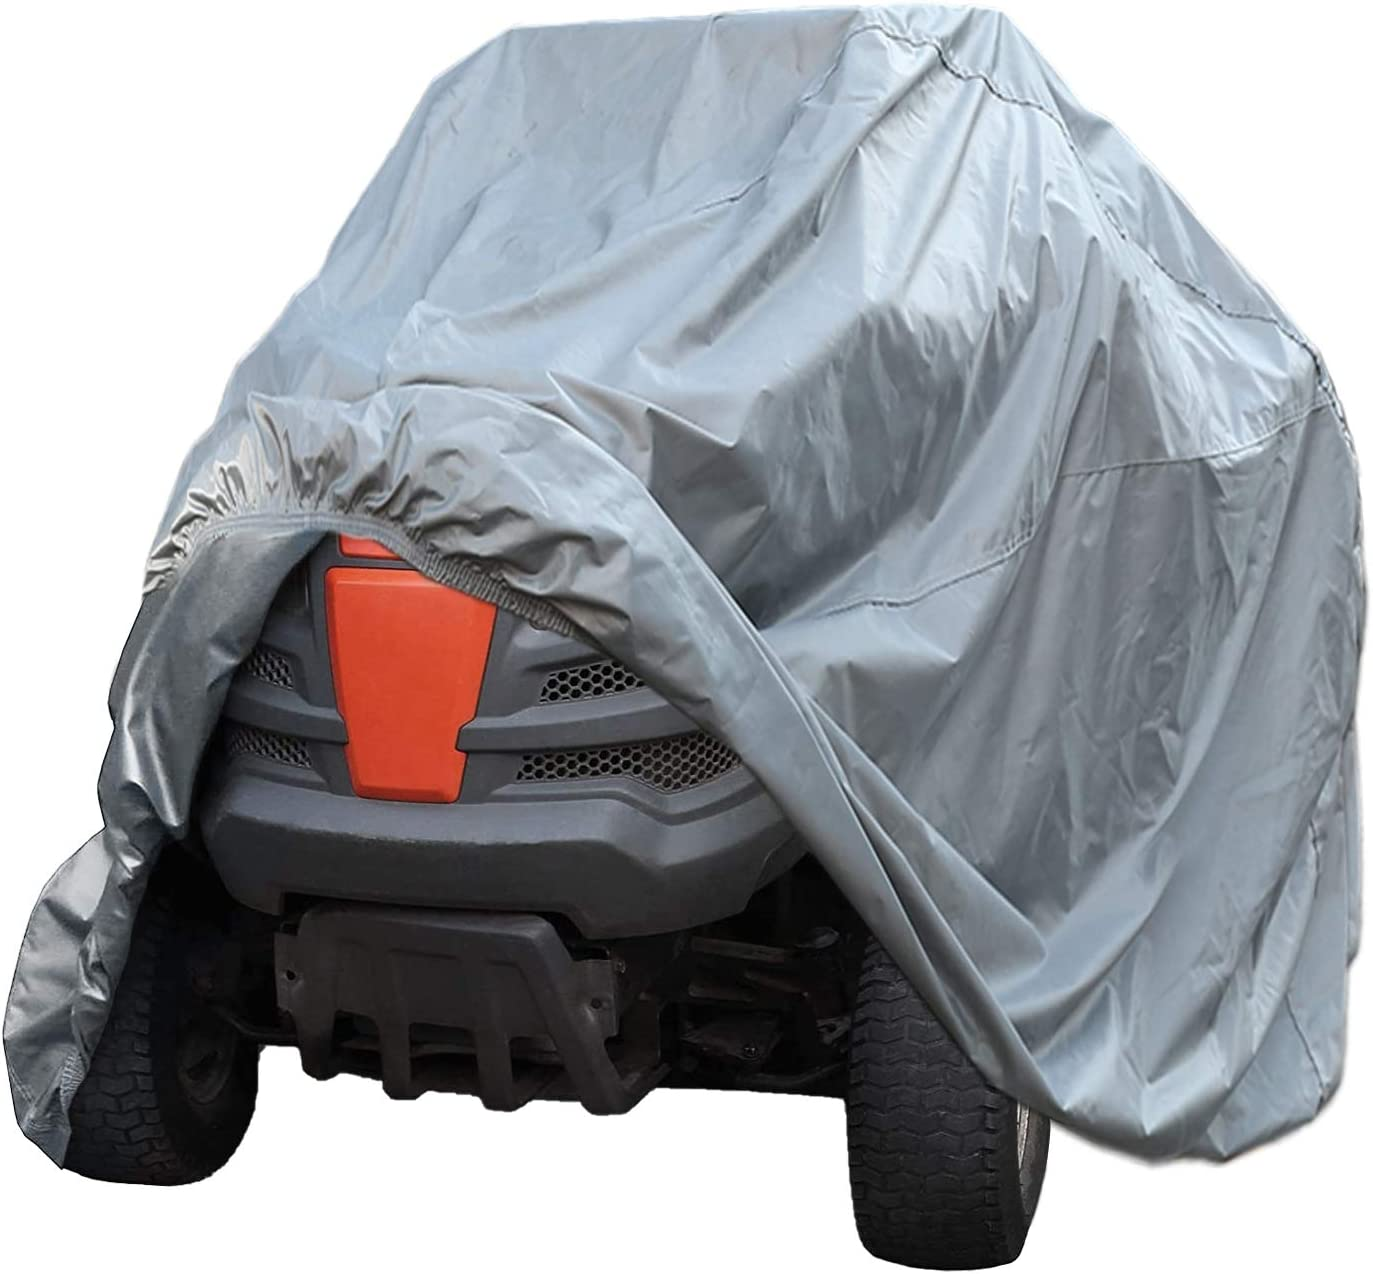 SEAZEN Waterproof Heavy Duty Lawn Mower Cover, UV and Dust Protection Lawn Tractor Cover, Universal Fit Garden Tractor Cover with Drawstring & Storage Bag